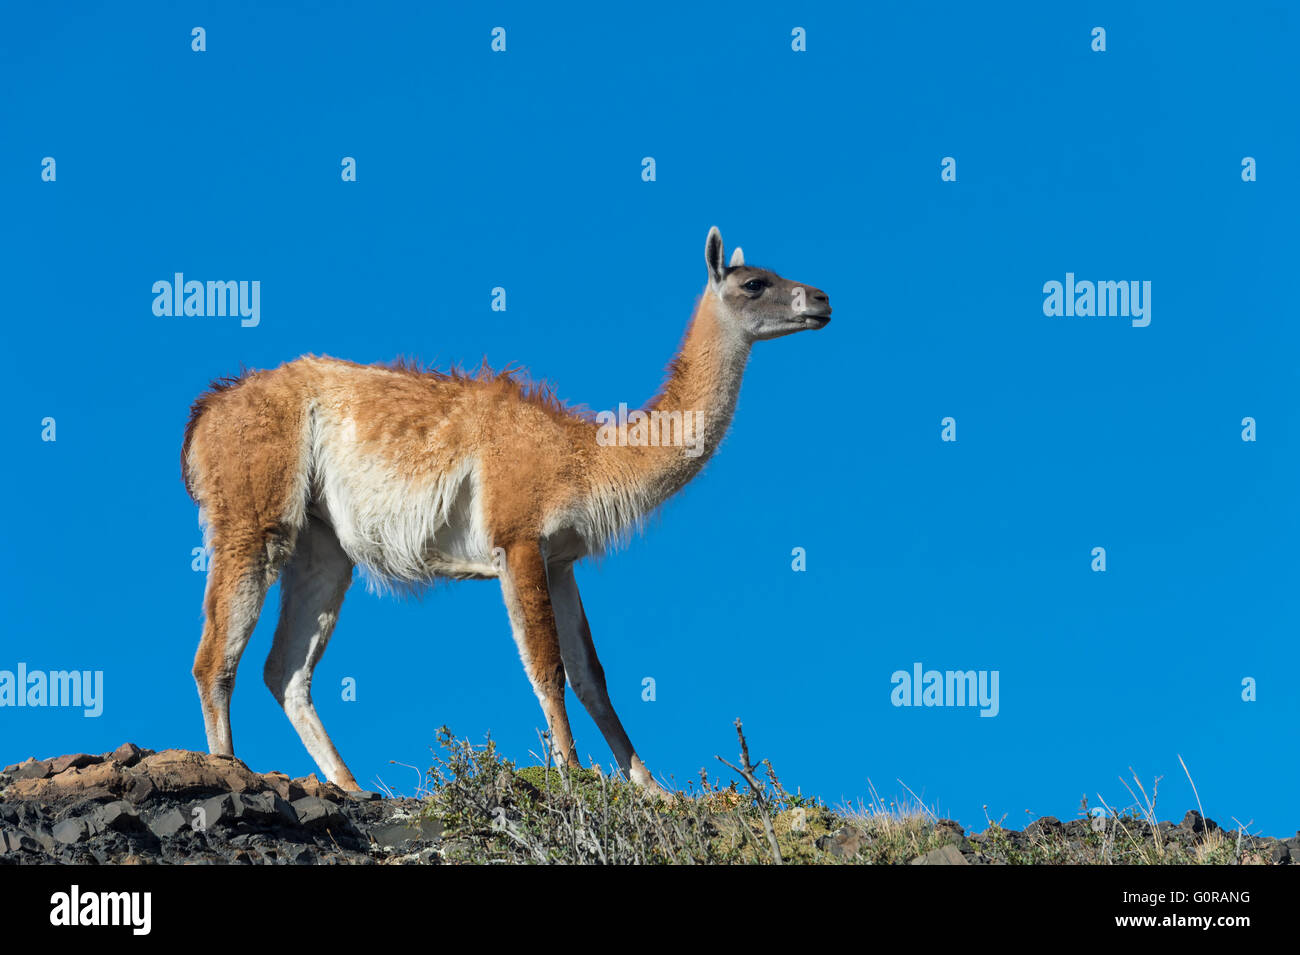 Guanaco (Lama guanicoe) on a ridge, Torres del Paine National Park, Chilean Patagonia, Chile Stock Photo